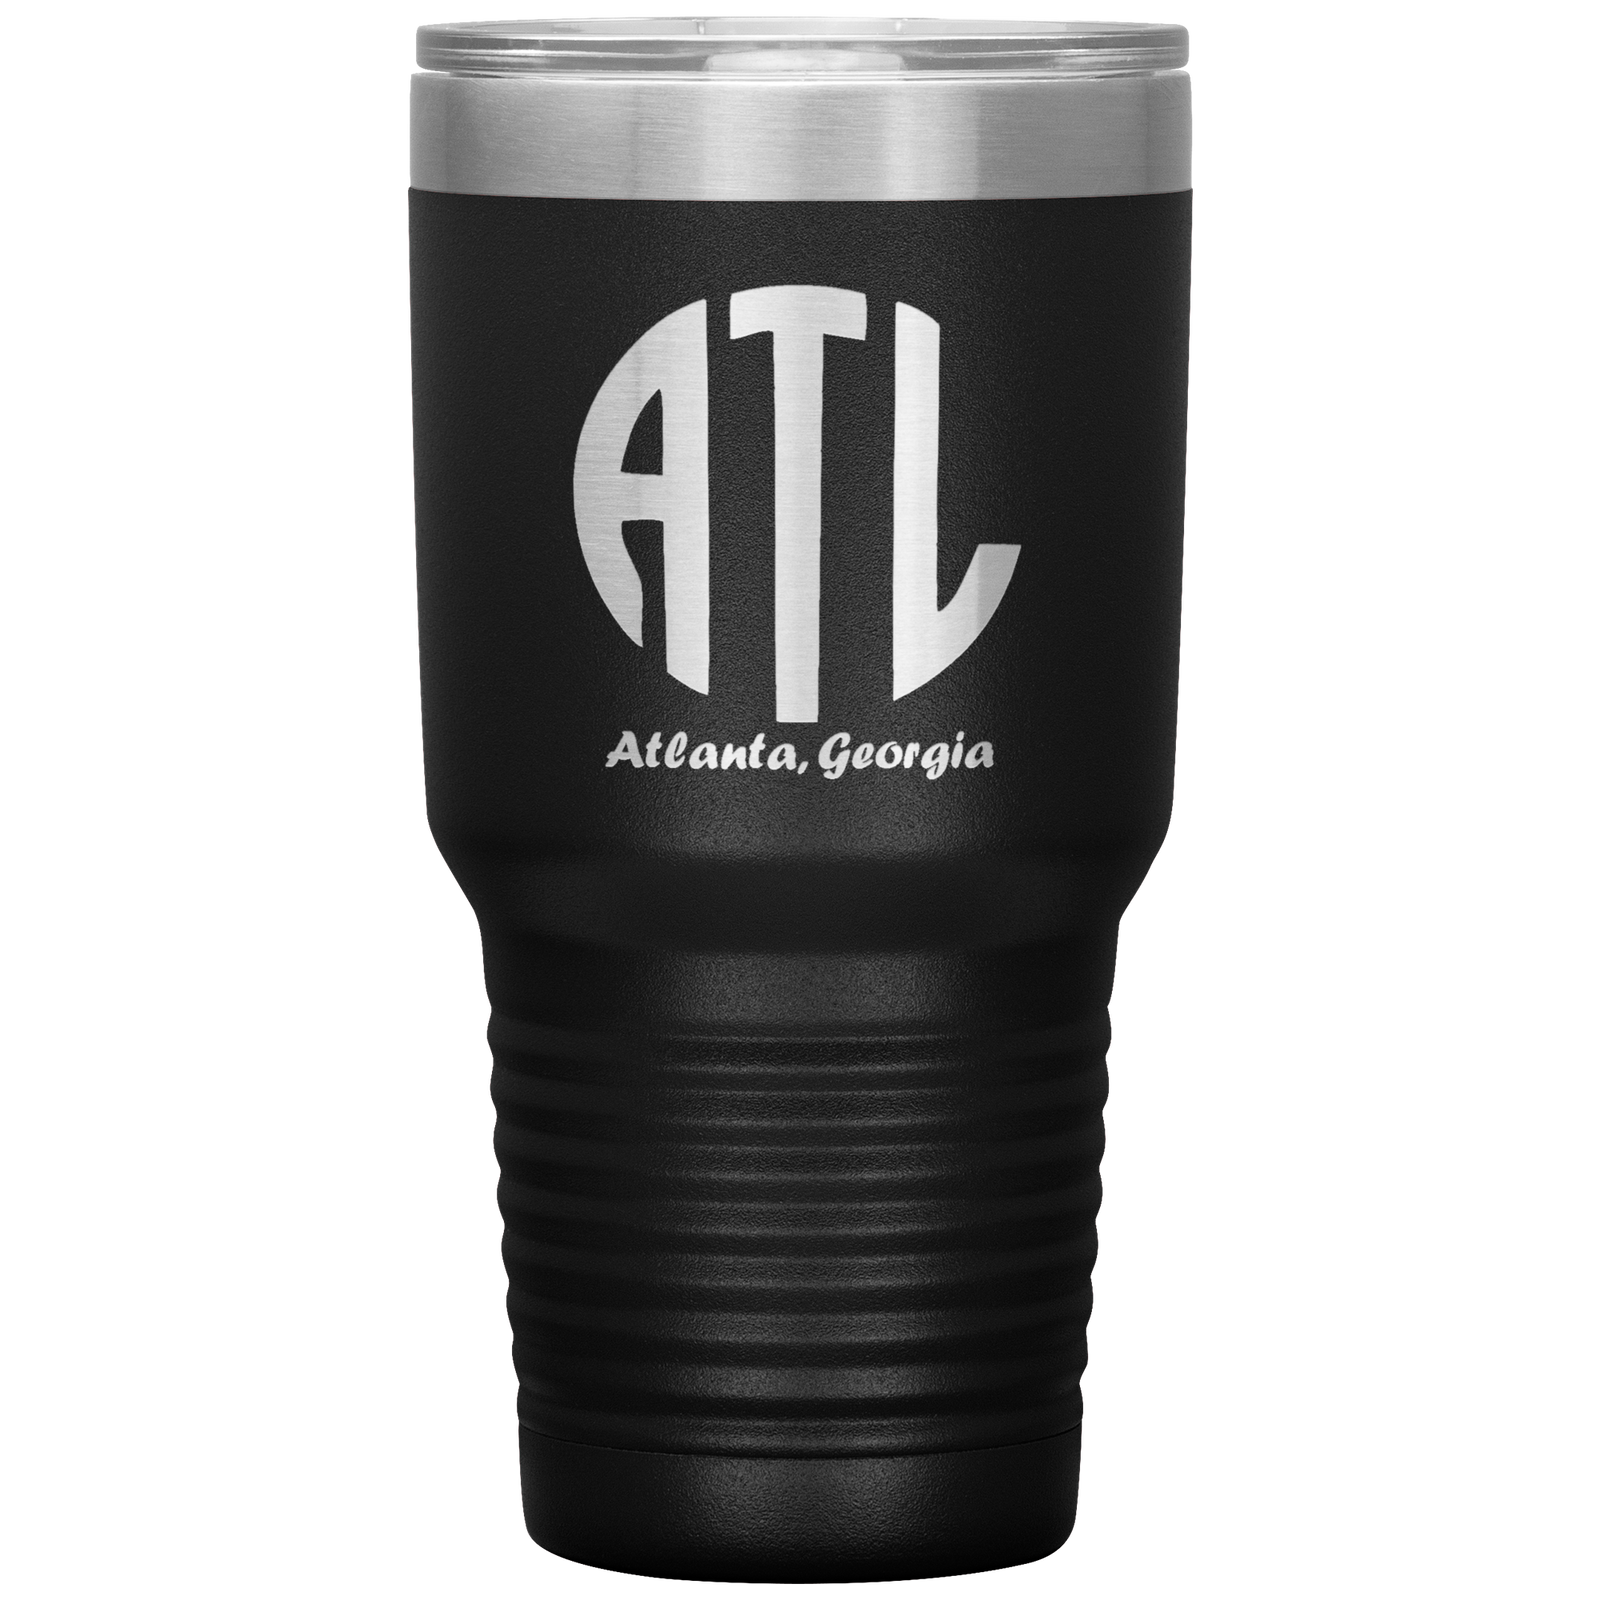 Primary image for ATL Monogram Double Wall Vacuum Insulated Stainless Steel Tumbler 30 OZ with Lid